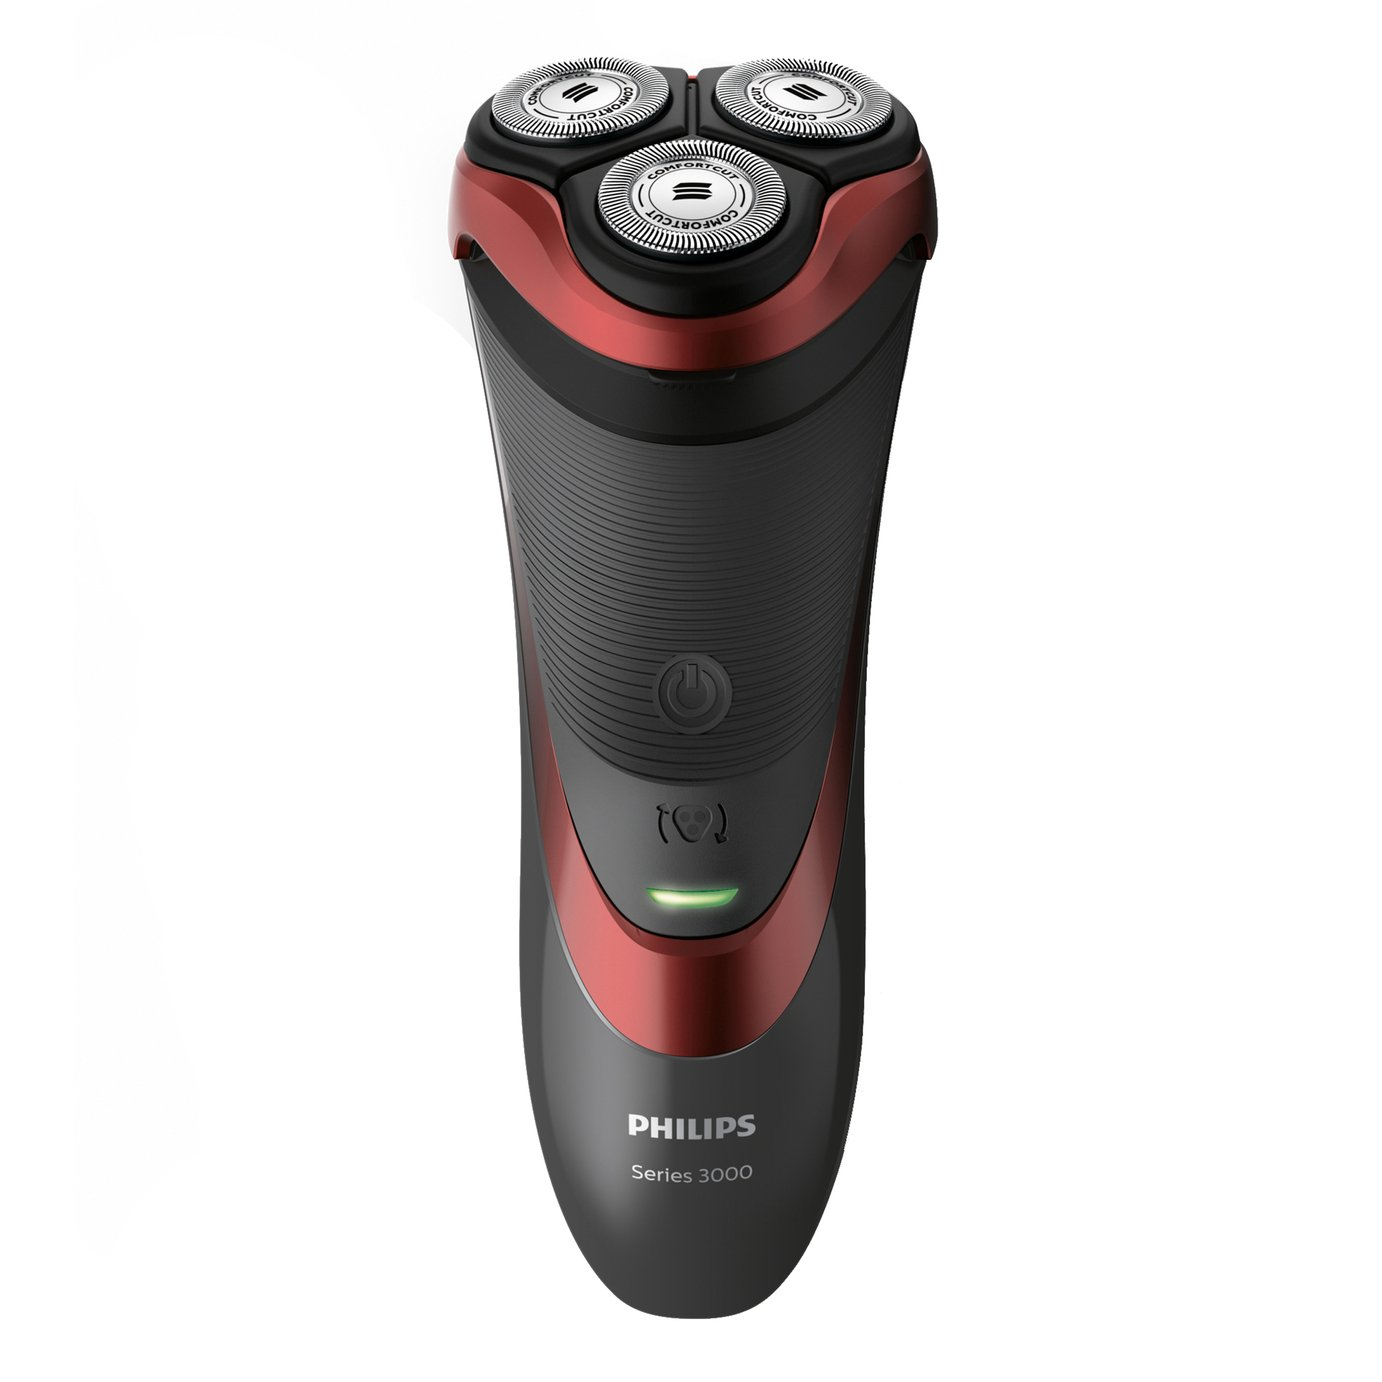 Philips Series 3000 Wet and Dry Electric Shaver S3580/06